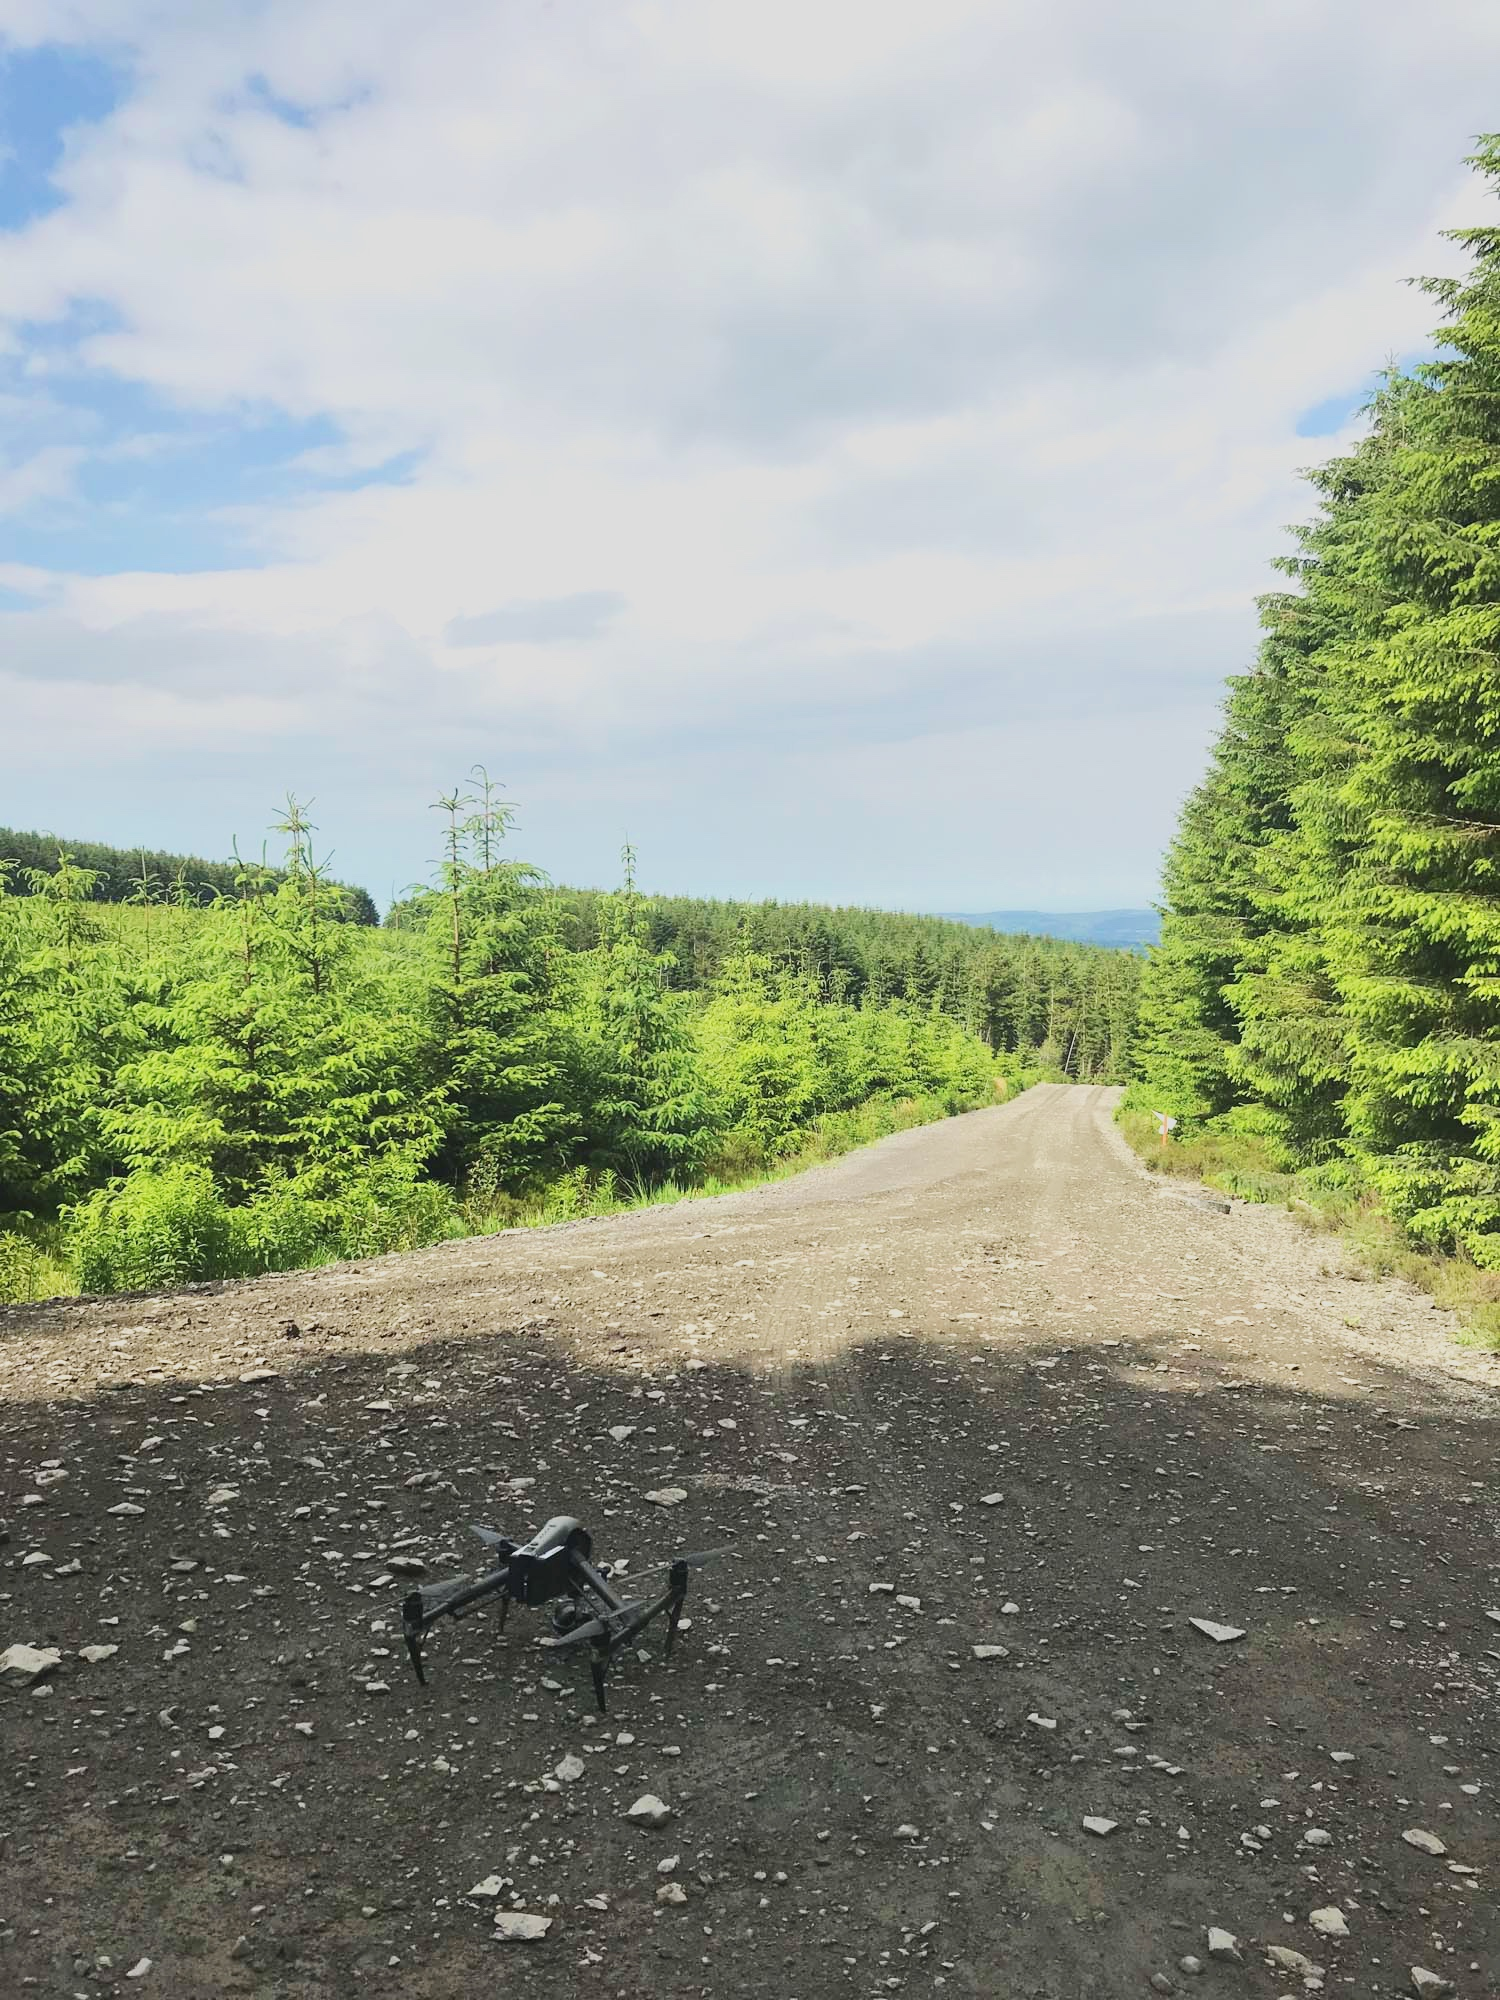 drone_filming_aerial_imagery_north_wales_atherton_evans-4.jpg